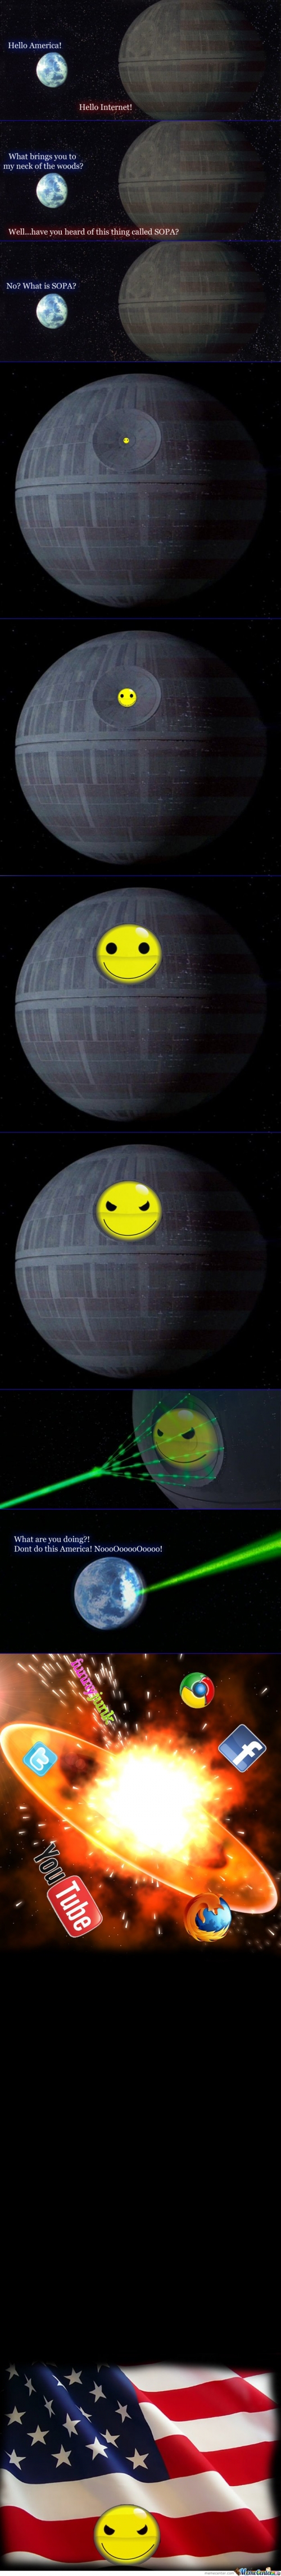 Epic content : SOPA as Death Star